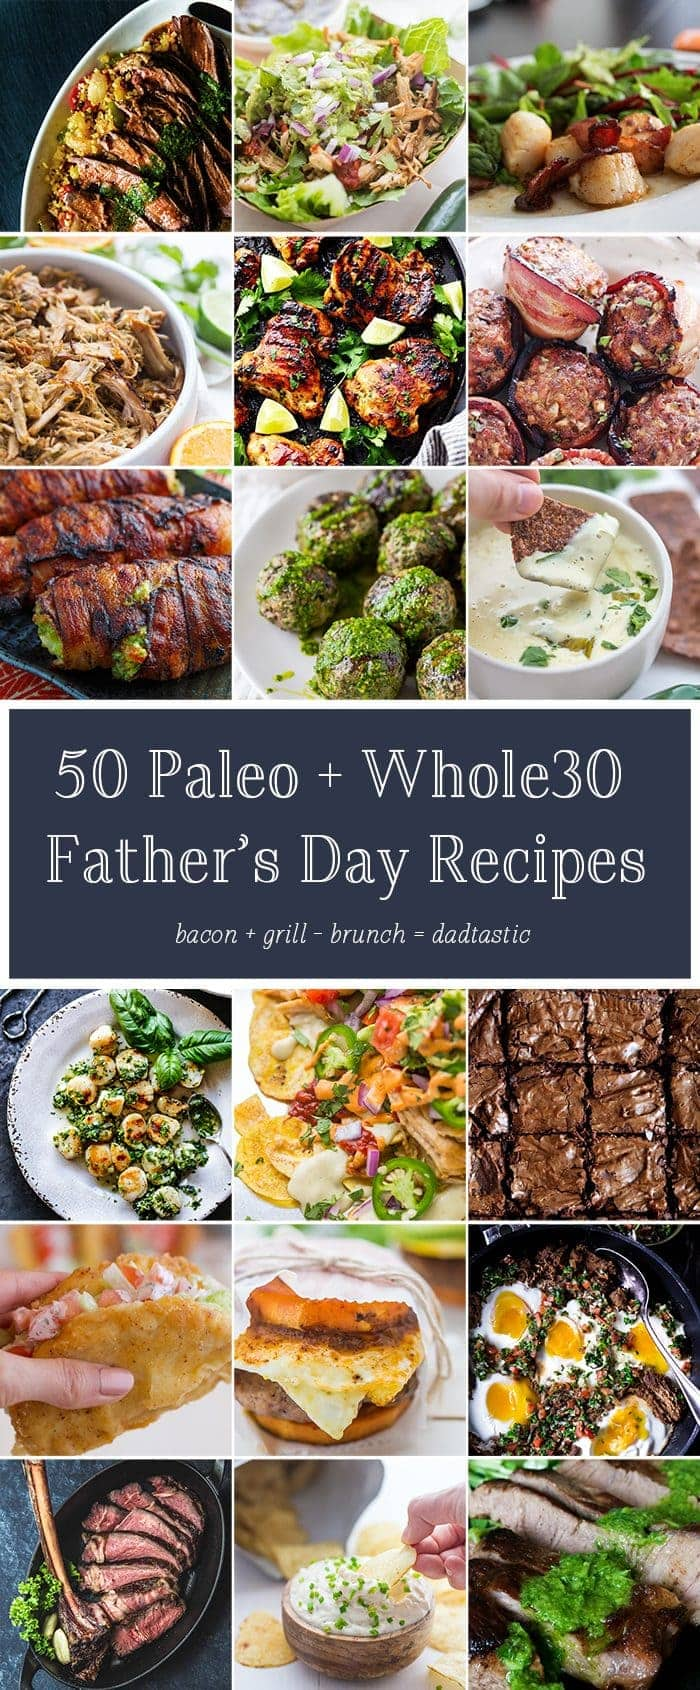 This Father's Day, show dad what a badass he is with... what else? Grilled meat. Oh, and bacon and stuff... You know, paleo Father's Day classics! I've put together dozens of my favorite paleo Father's Day recipes that celebrate dad with total dude food: no arugula salads, no mini quiche, no mimosas. Here, it's all grill marks and chip dips. These paleo Father's Day recipes are sure to show dad just how much he means to you. There's definitely a paleo Father's Day recipe in here for every dad - including lots of Whole30 Father's Day recipes, too. Cheers to dad!